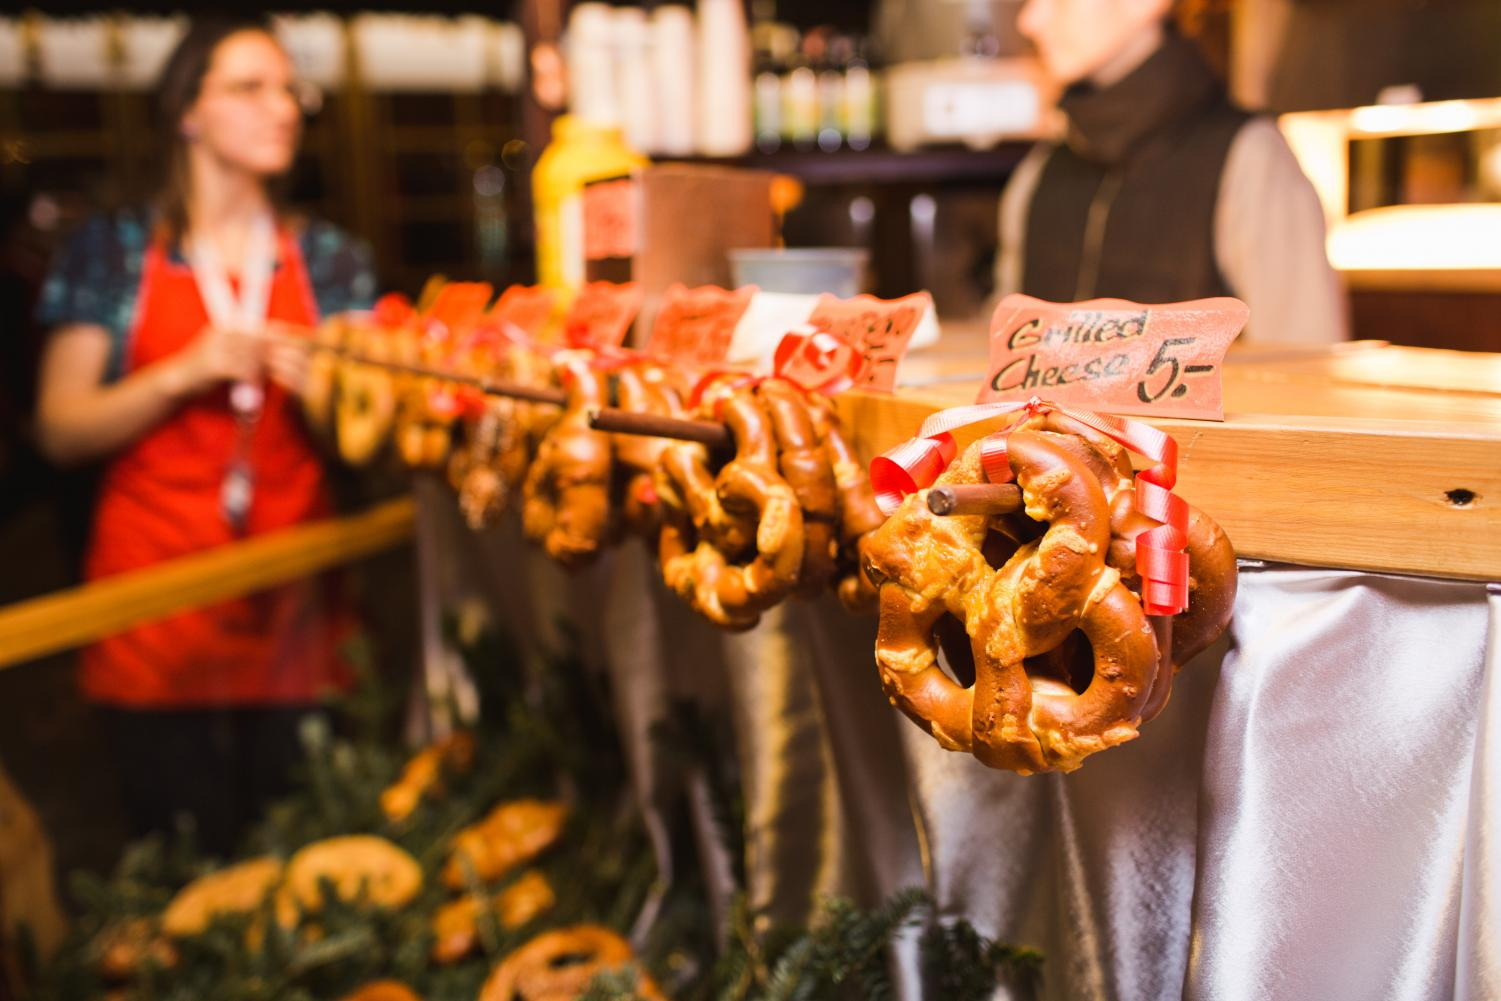 Milwaukee Pretzel Company is one of several vendors that will participate in this year's Christkindlmarket.